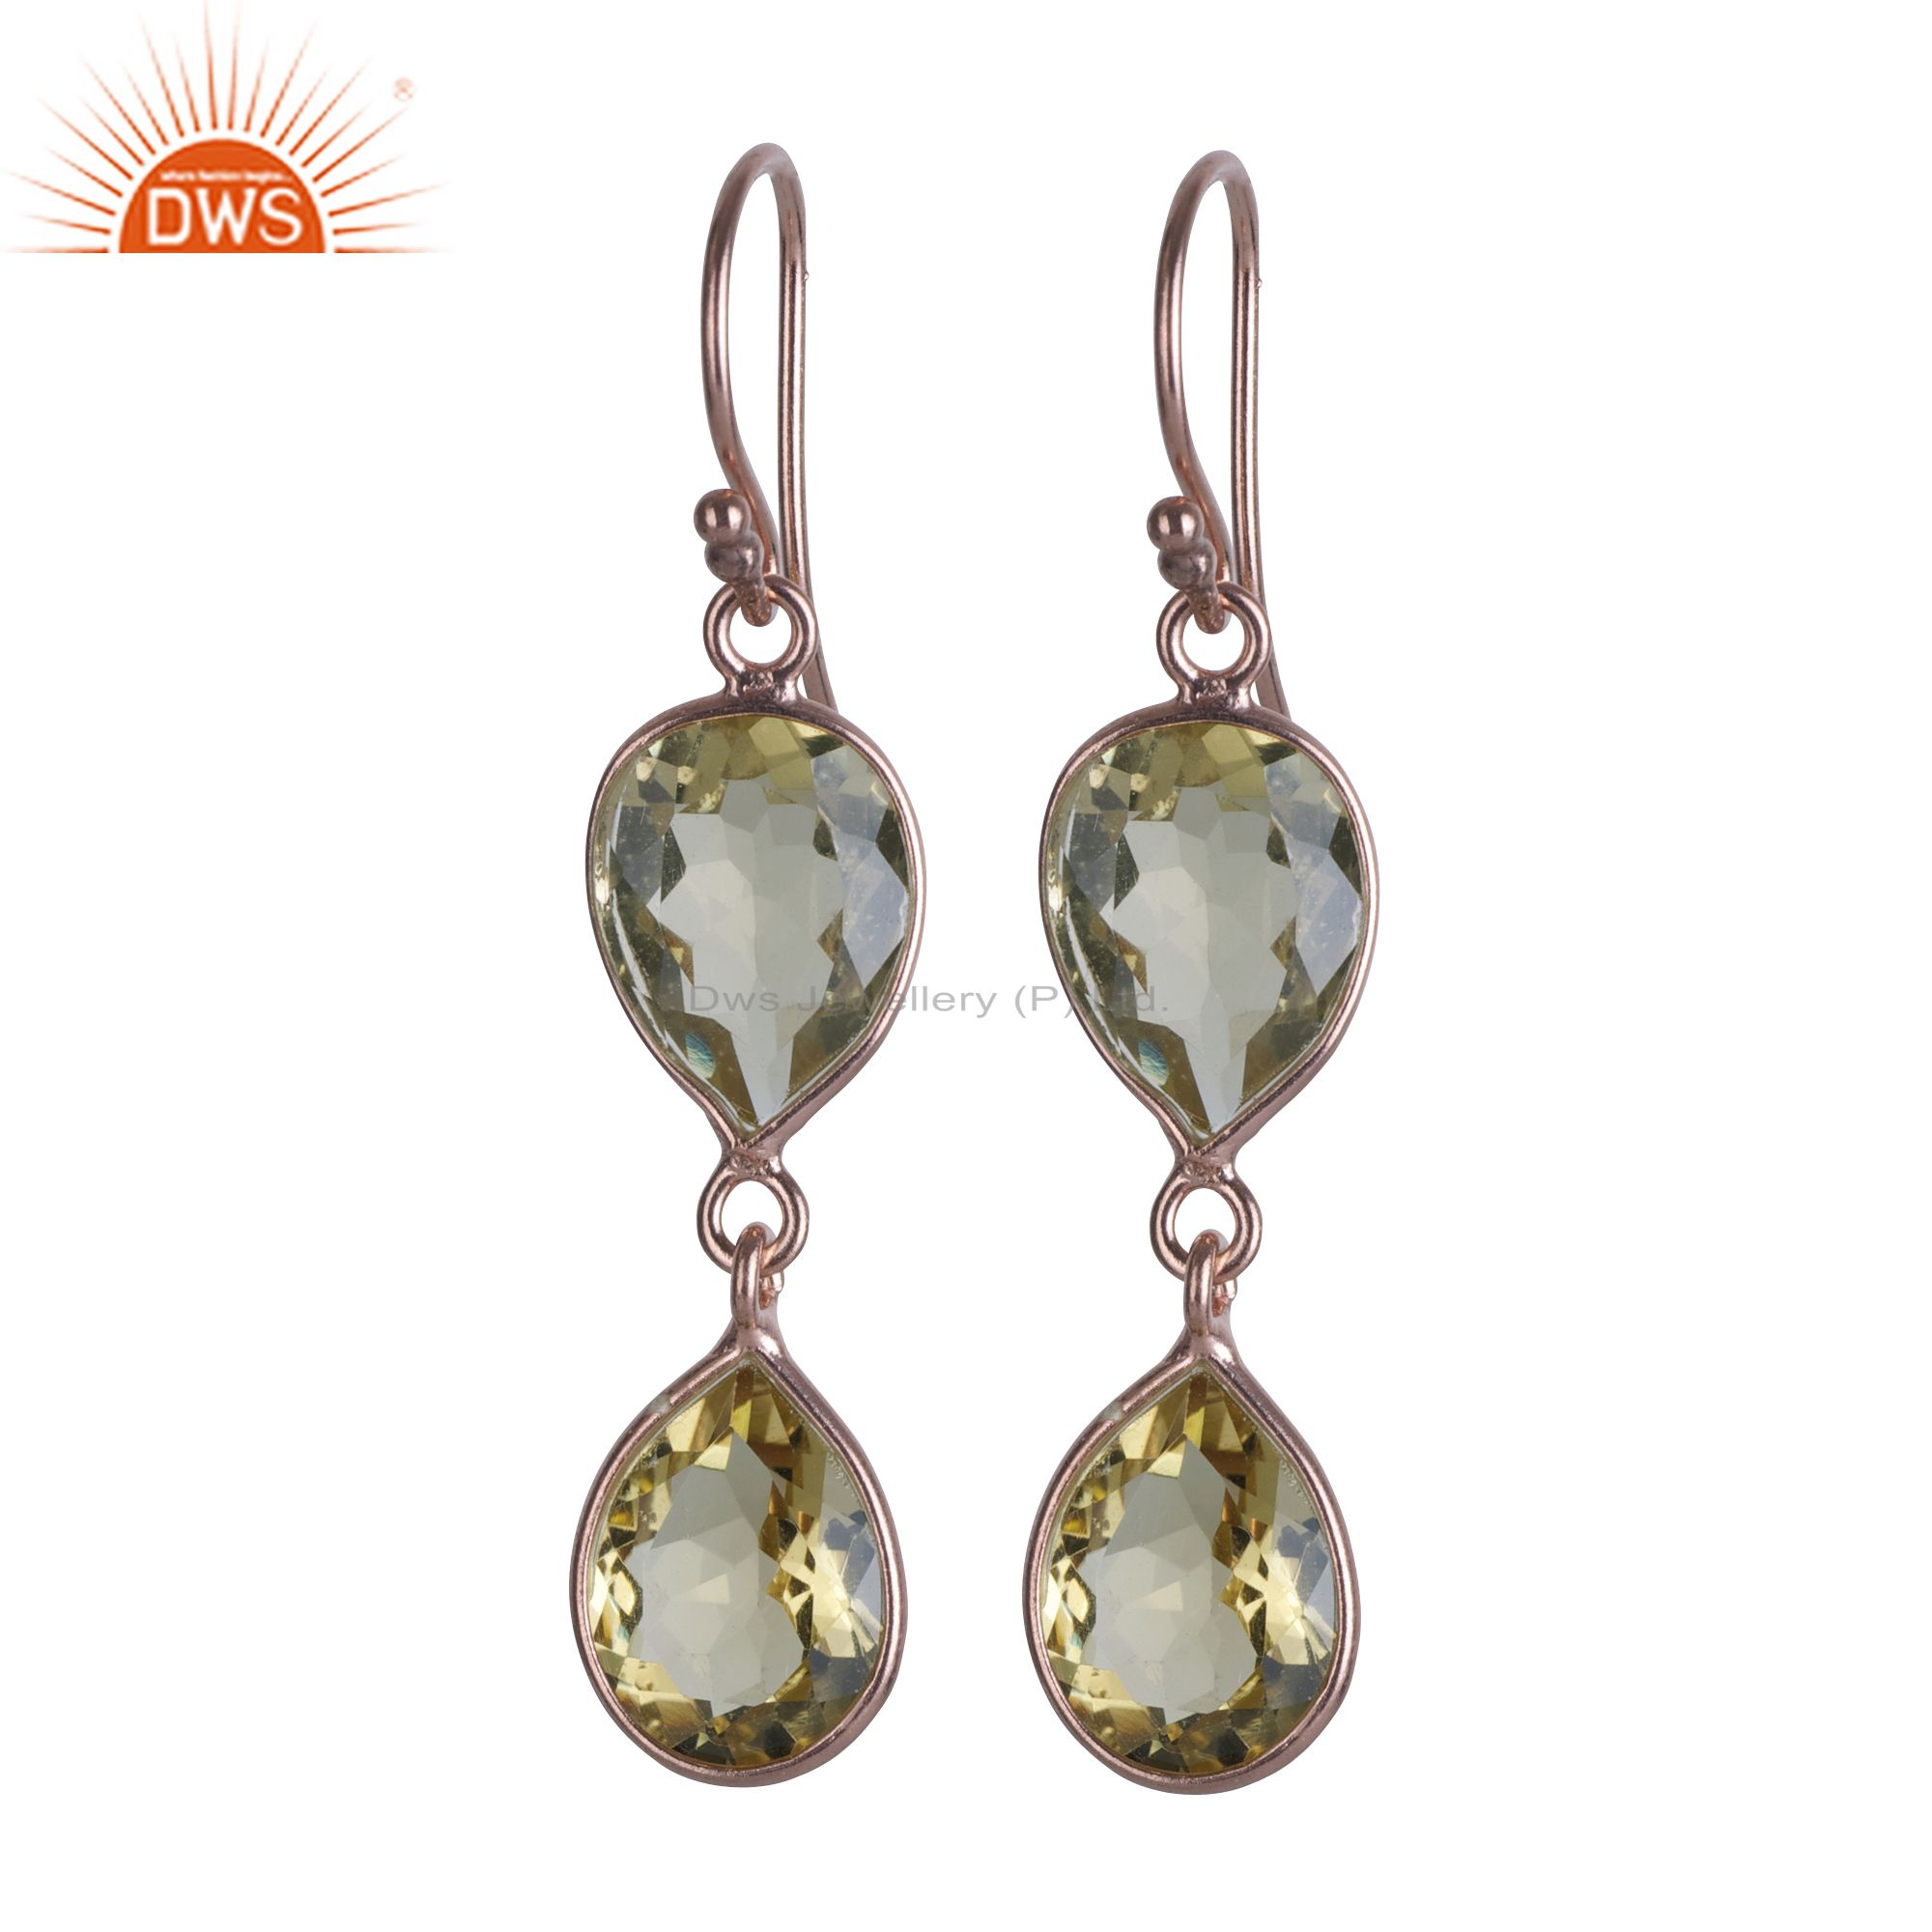 18K Rose Gold Plated Sterling Silver Lemon Topaz Bezel Set Double Drop Earrings